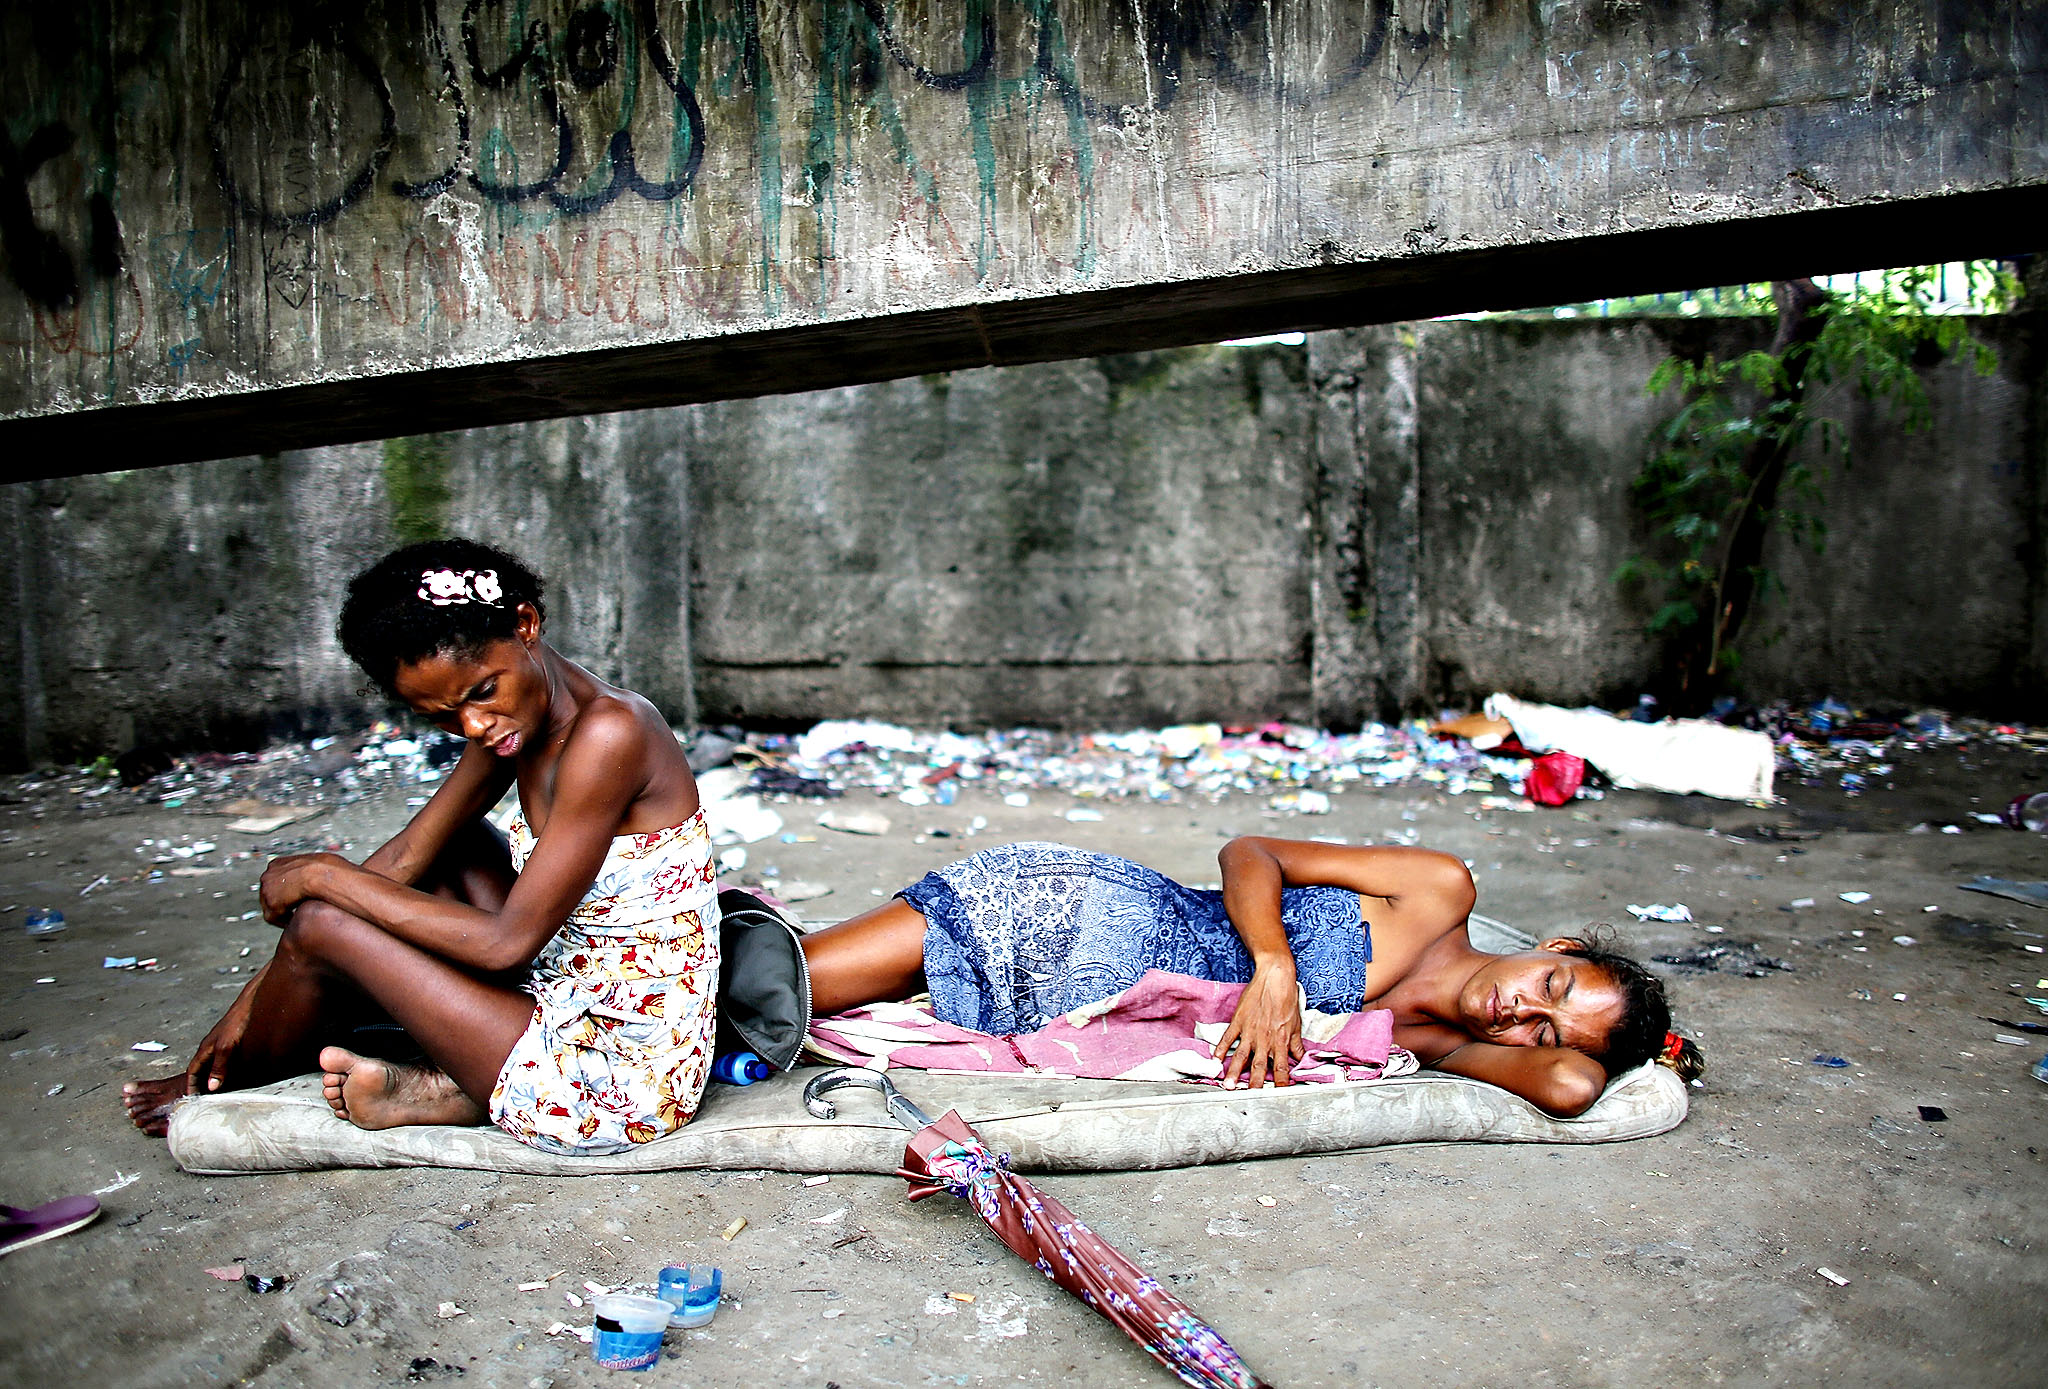 Drug users gather beneath an overpass in an area known as 'Cracolandia', or Crackland, in the Antares shantytown in Rio de Janeiro, Brazil. According to the Economist, recent studies have shown Brazil to be the world's largest crack market, with 1-1.2 million users.